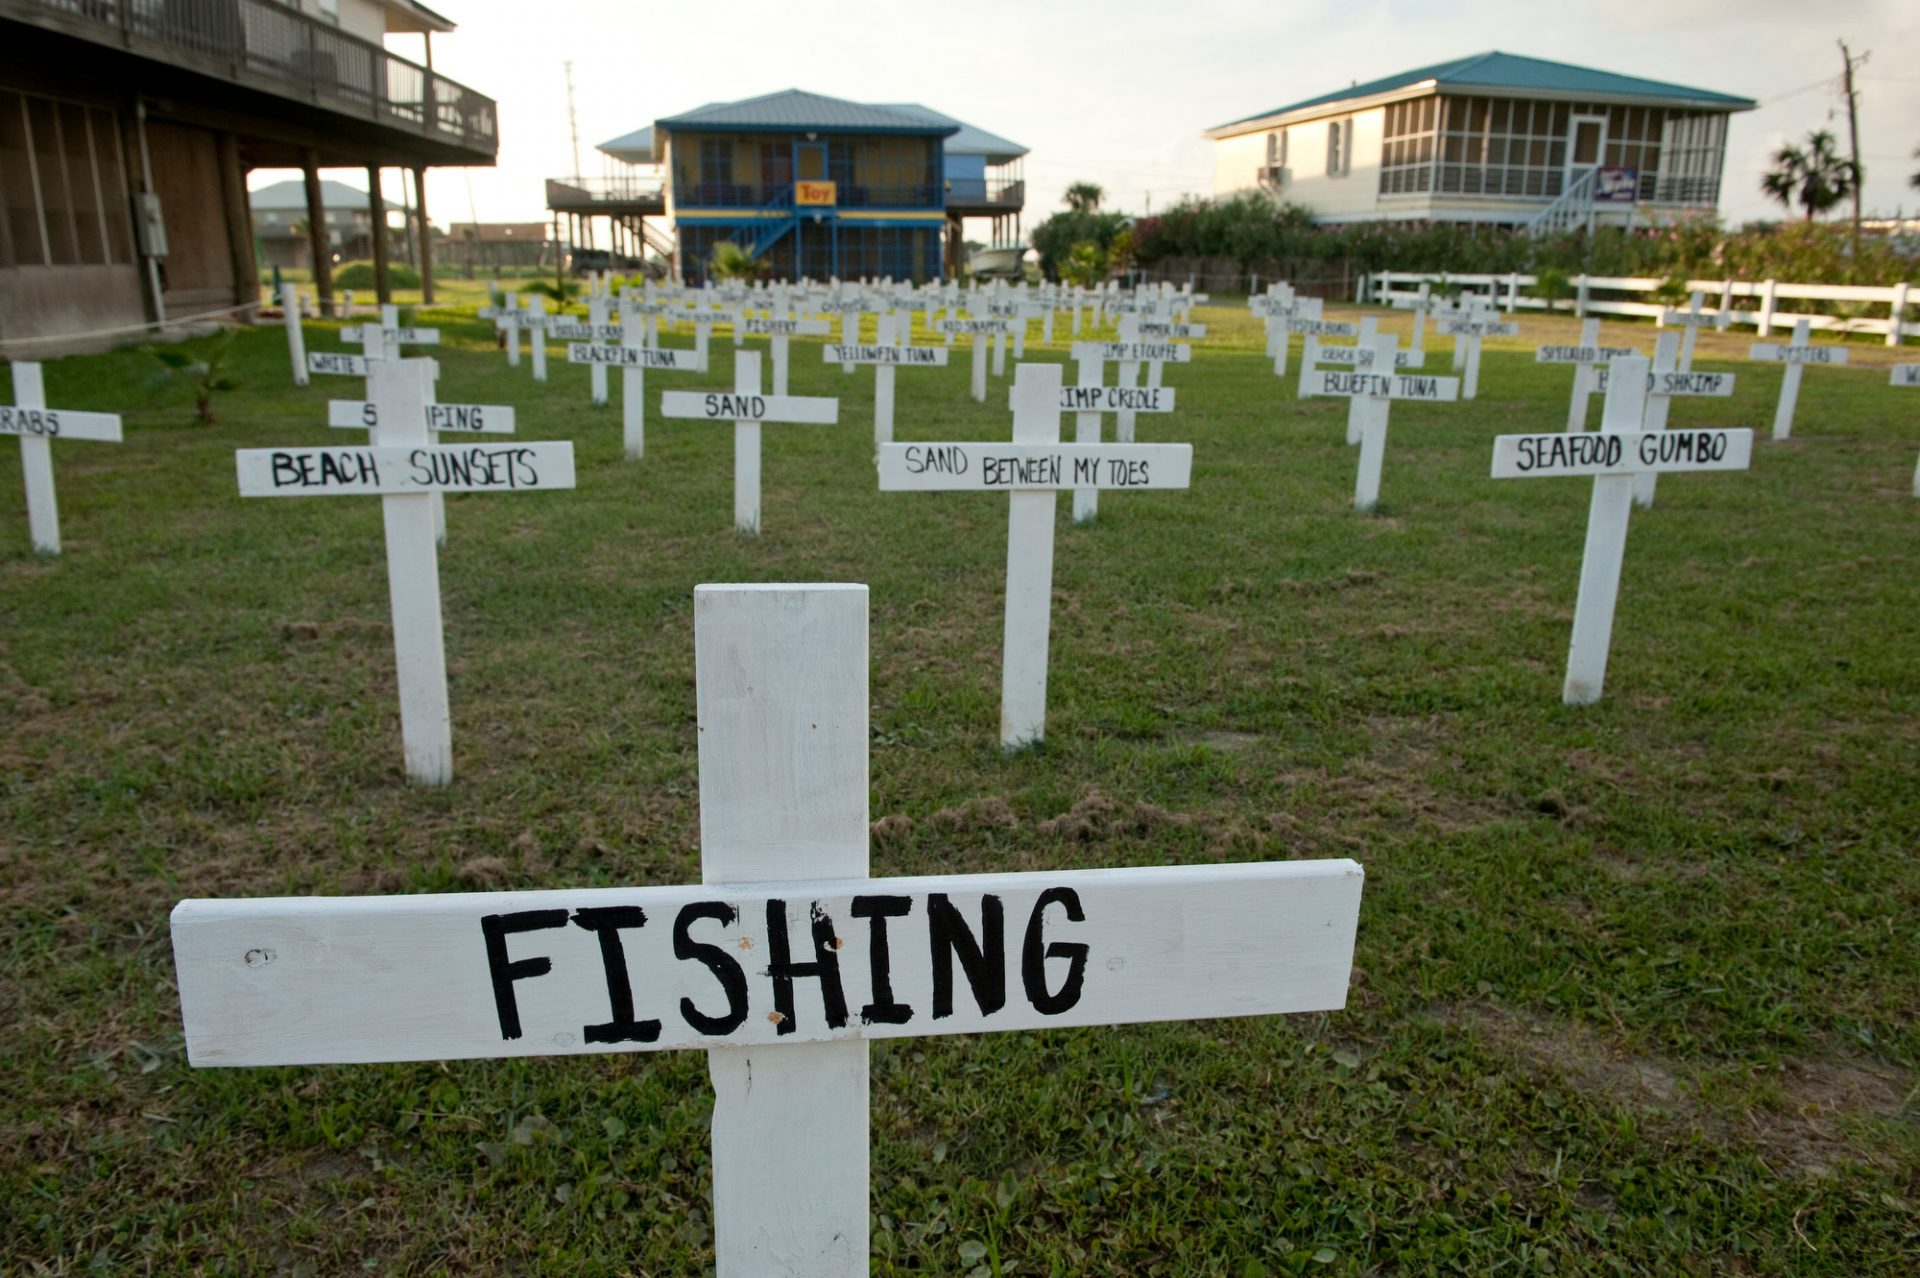 Photo: A protest cemetery dedicated to all the things lost because of the Deepwater Horizon oil spill on Grand Isle, Louisiana.